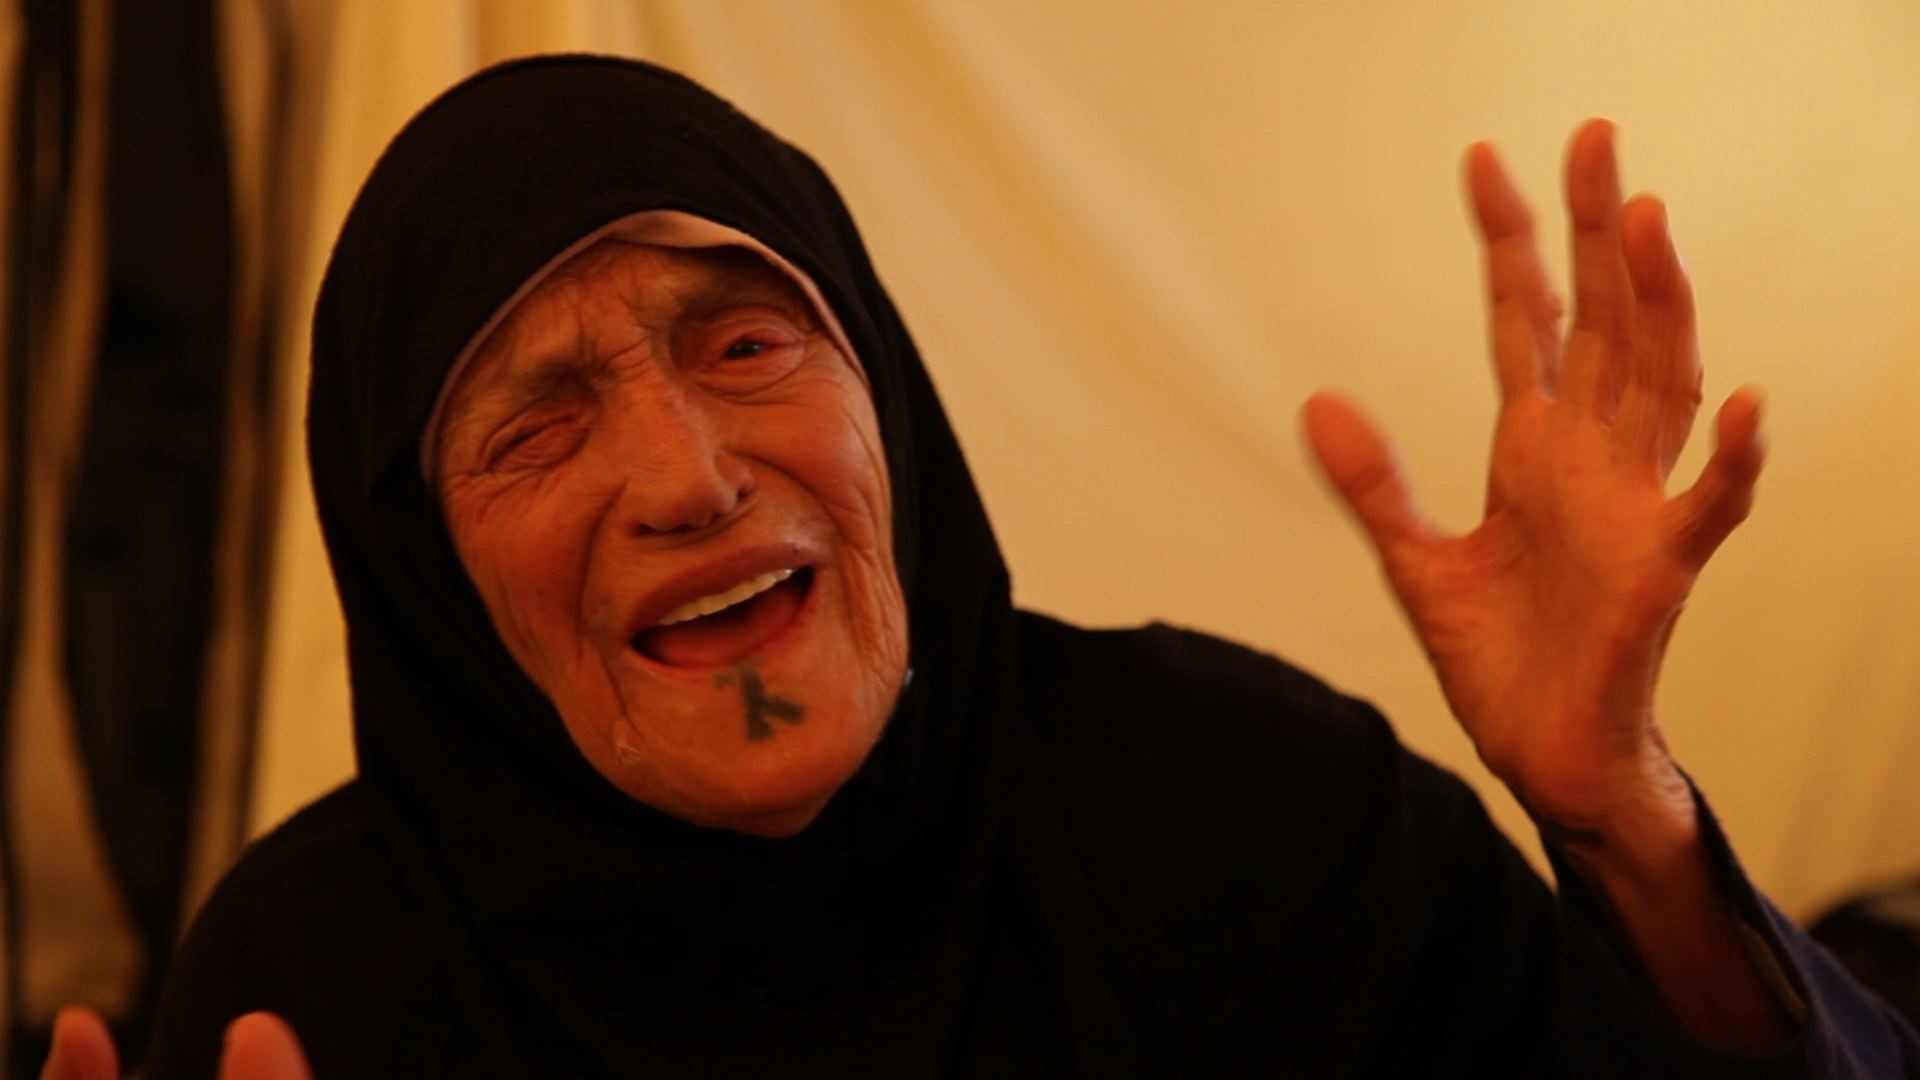 an elderly lady in syria